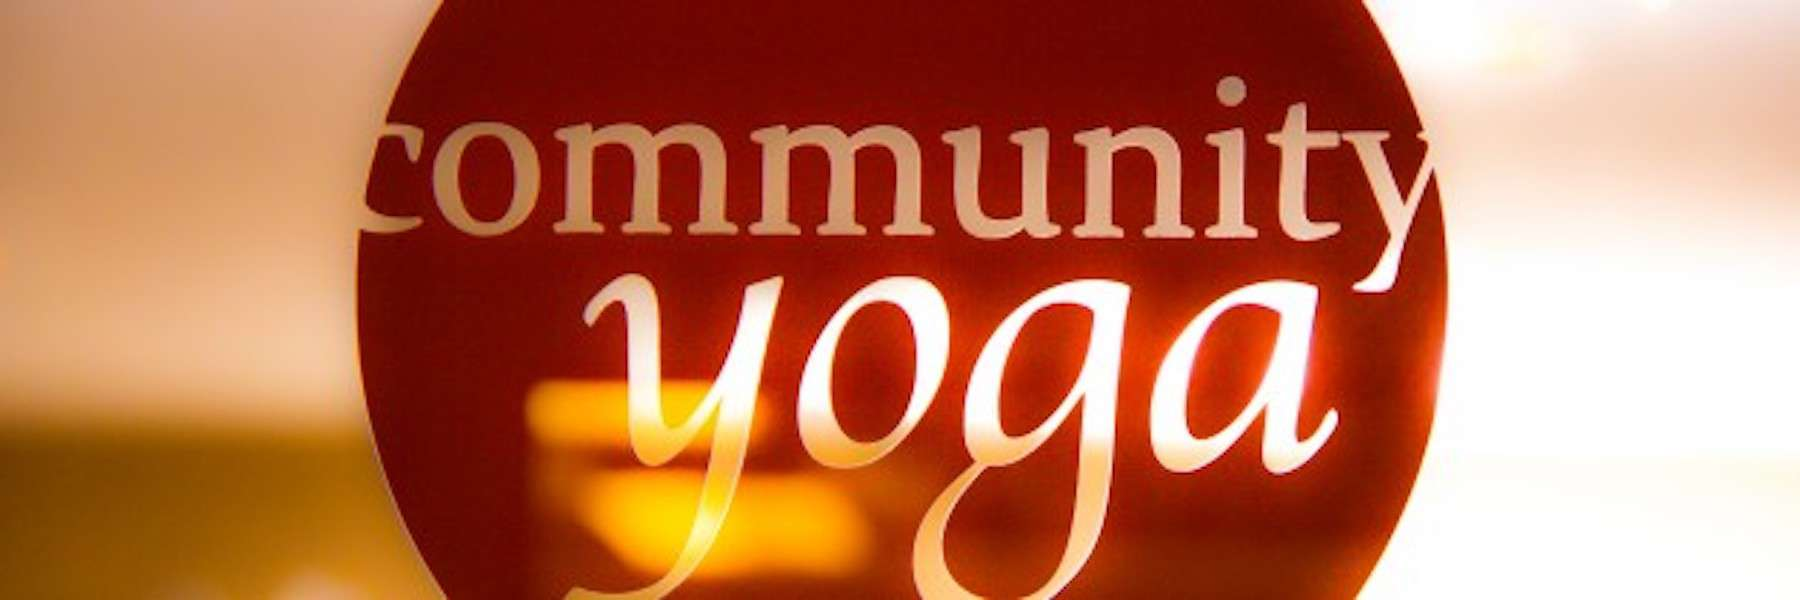 Community Mixed Level Yoga Class